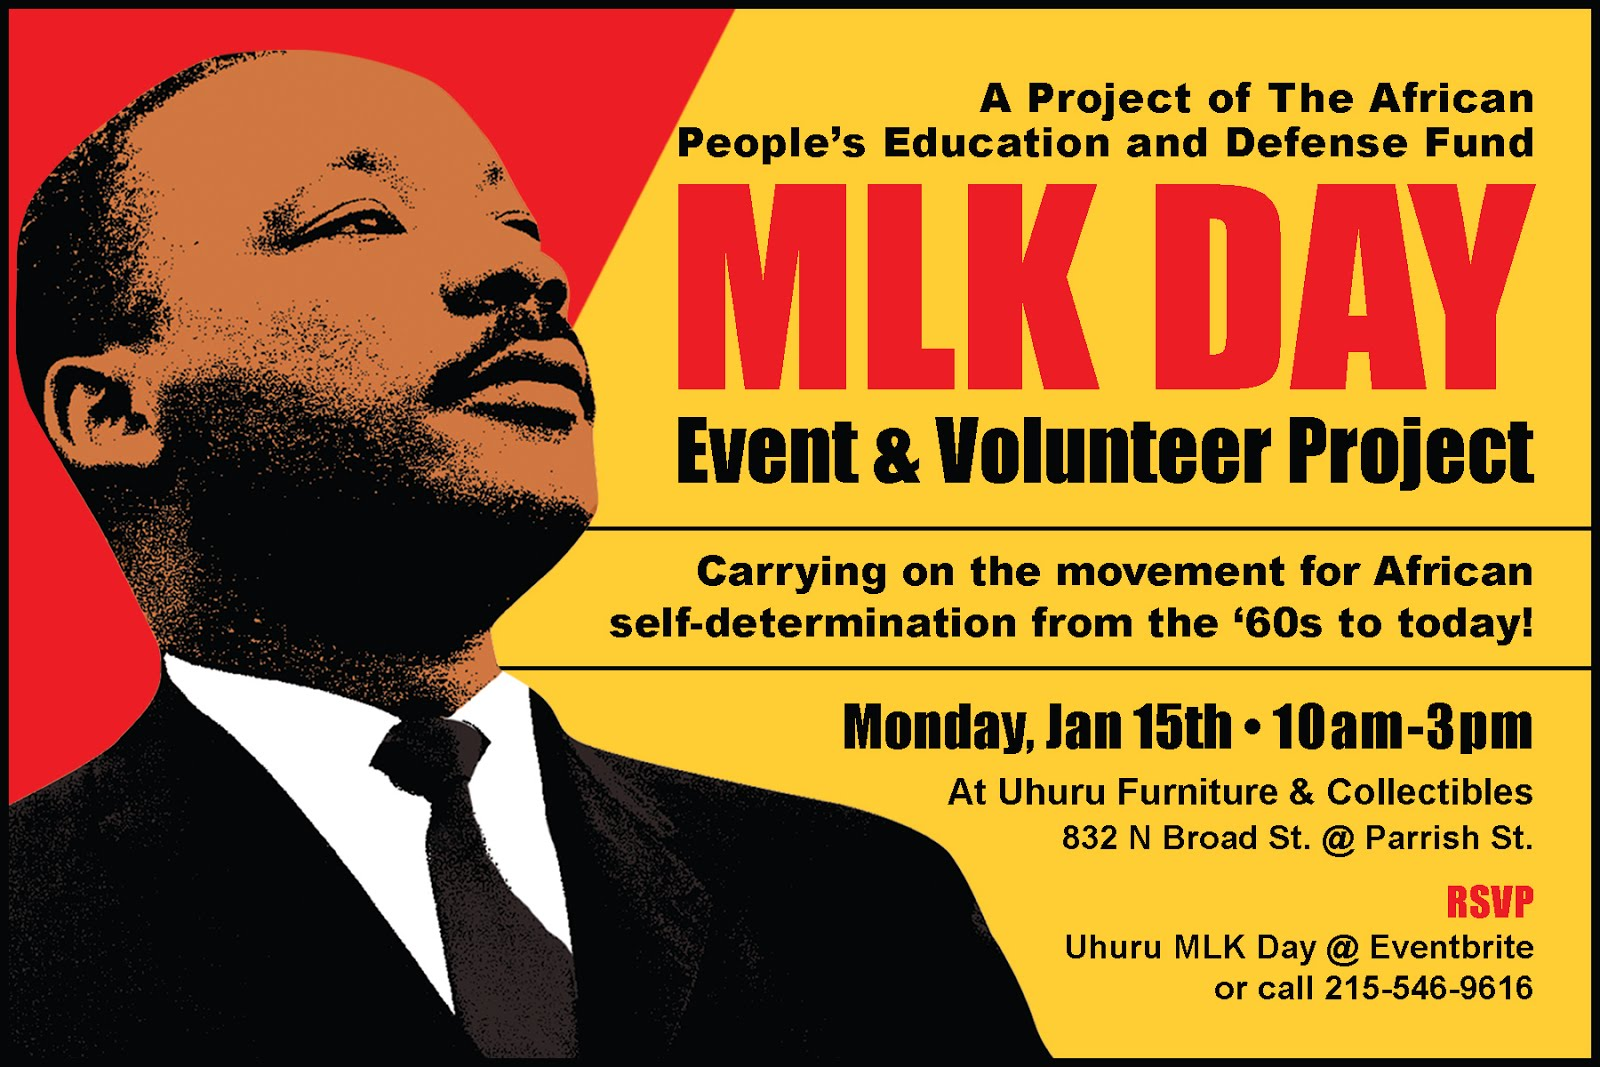 Register NOW for MLK Day Event & Volunteer Project